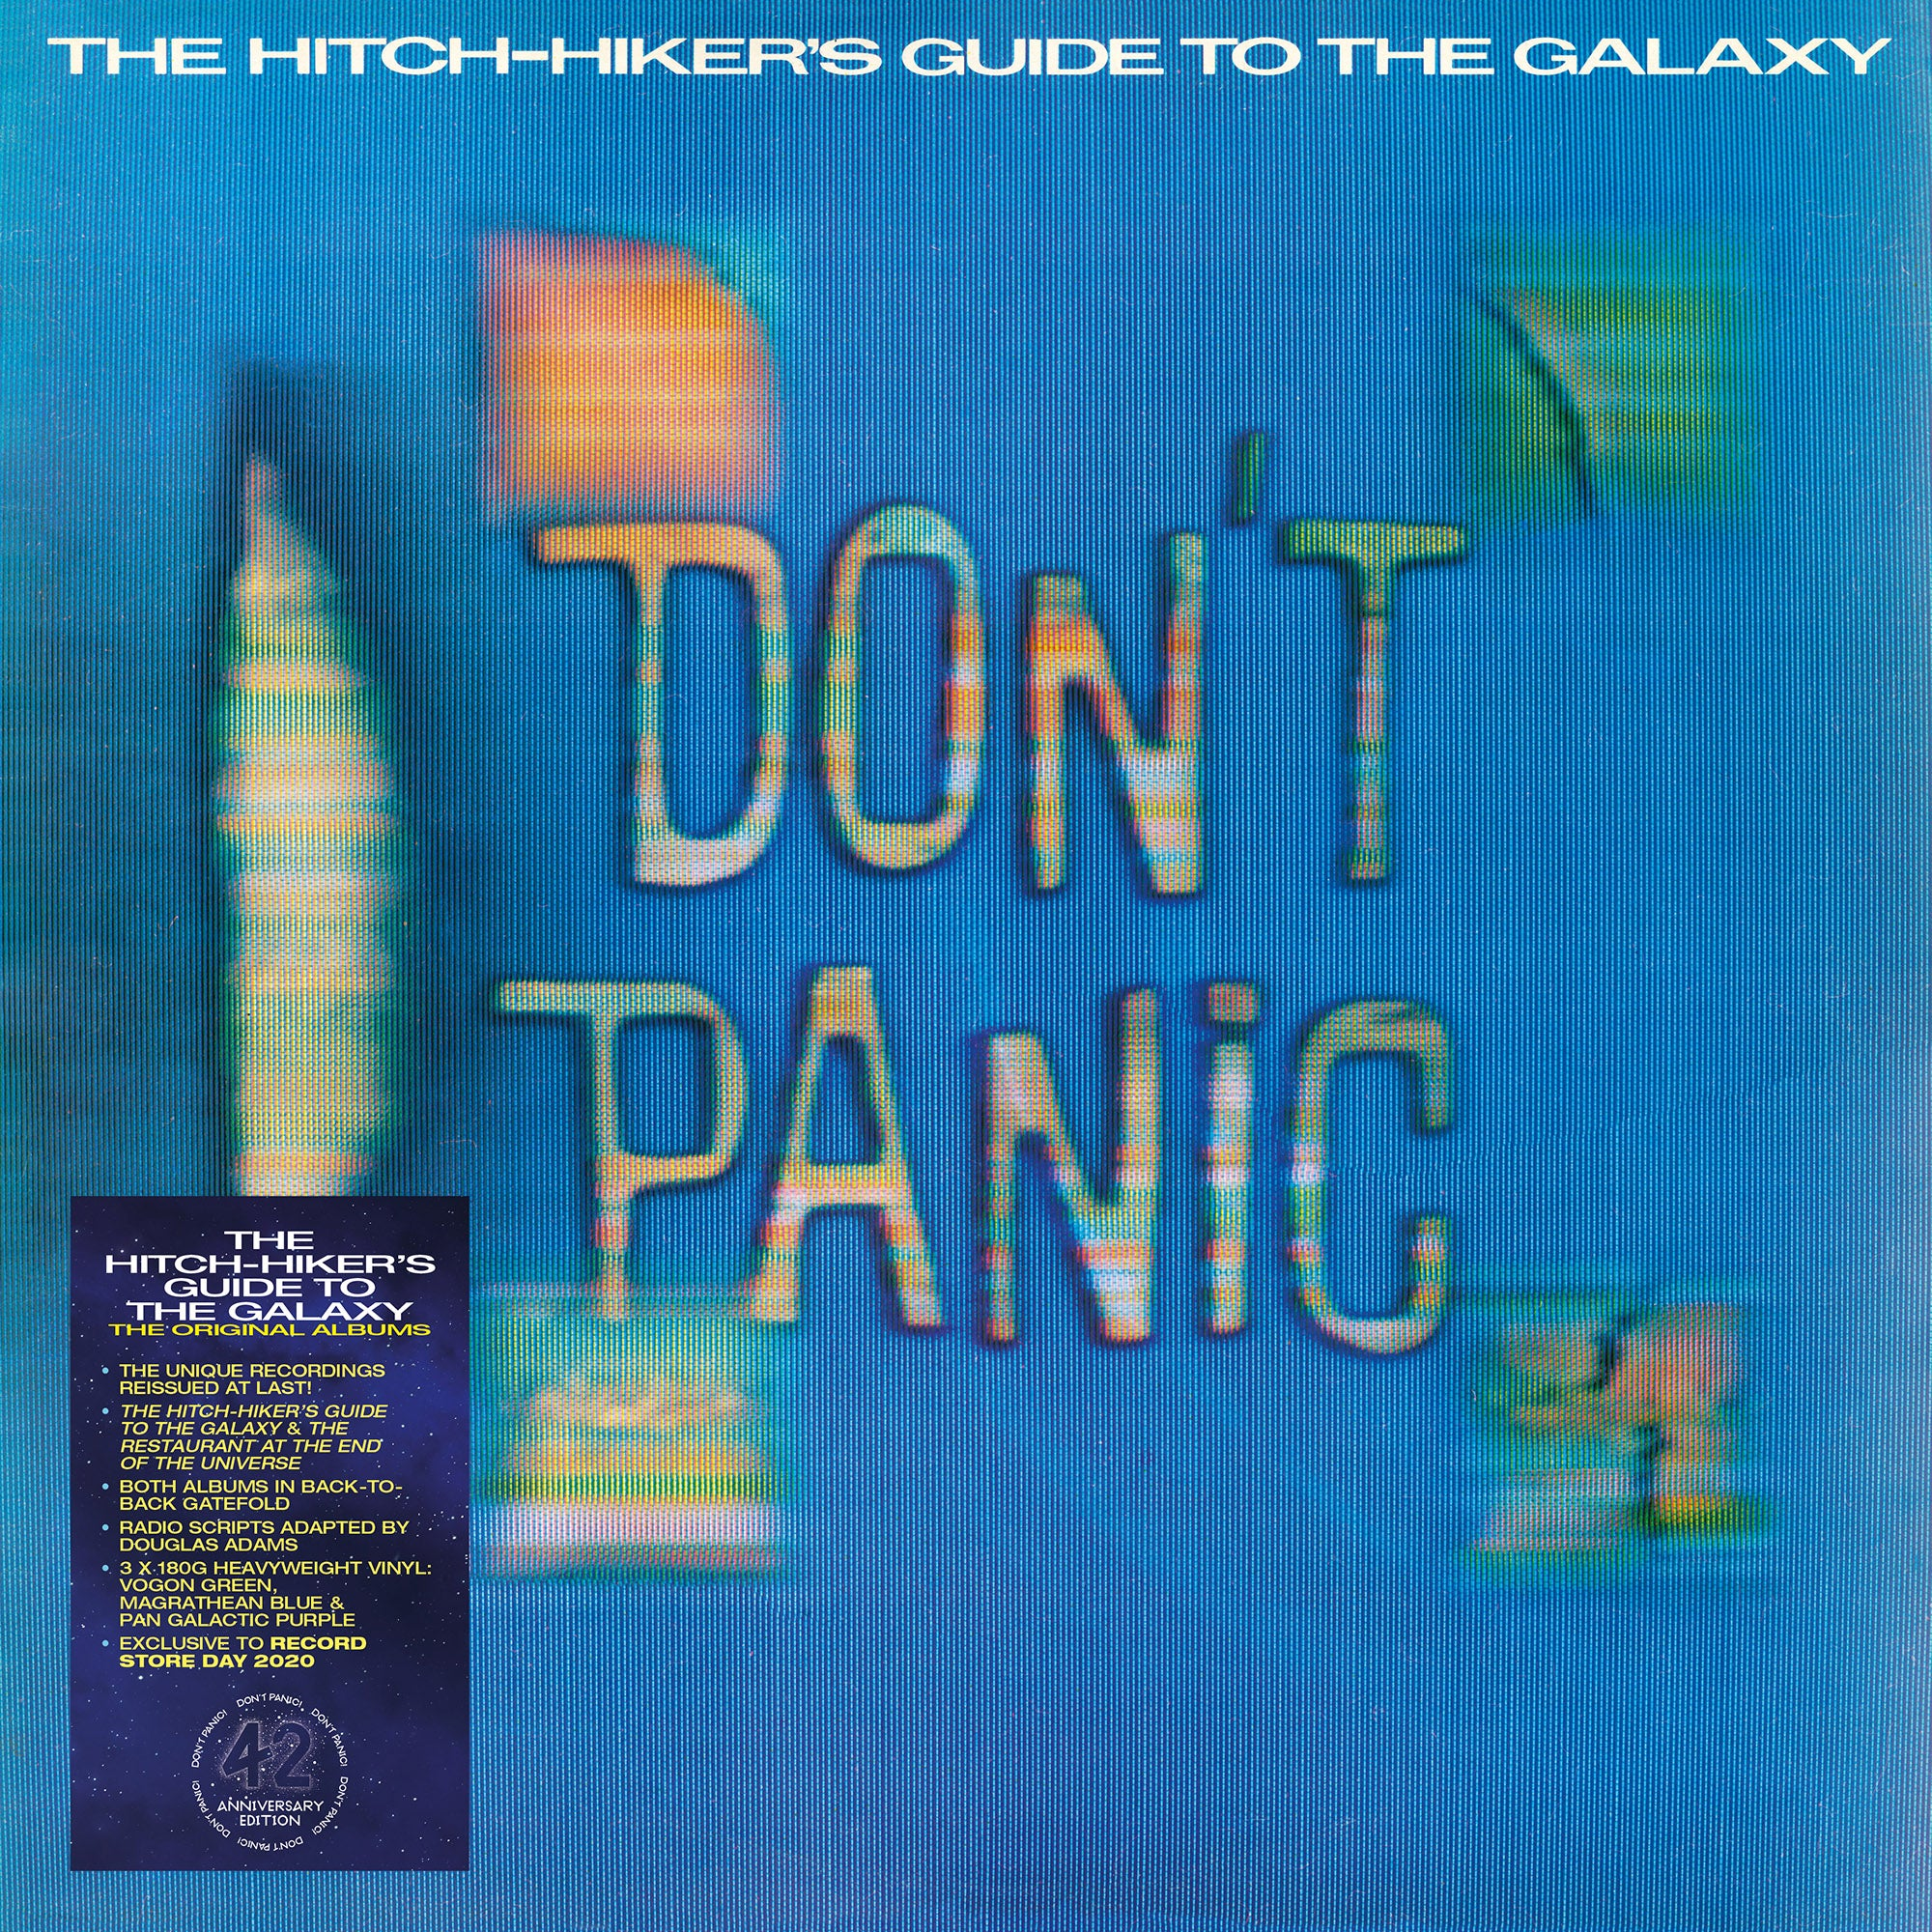 Hitchhikers Guide To the Galaxy - The Original Albums (RSD 2020 Drop One) 3LP 180g Colour Vinyl Record Album